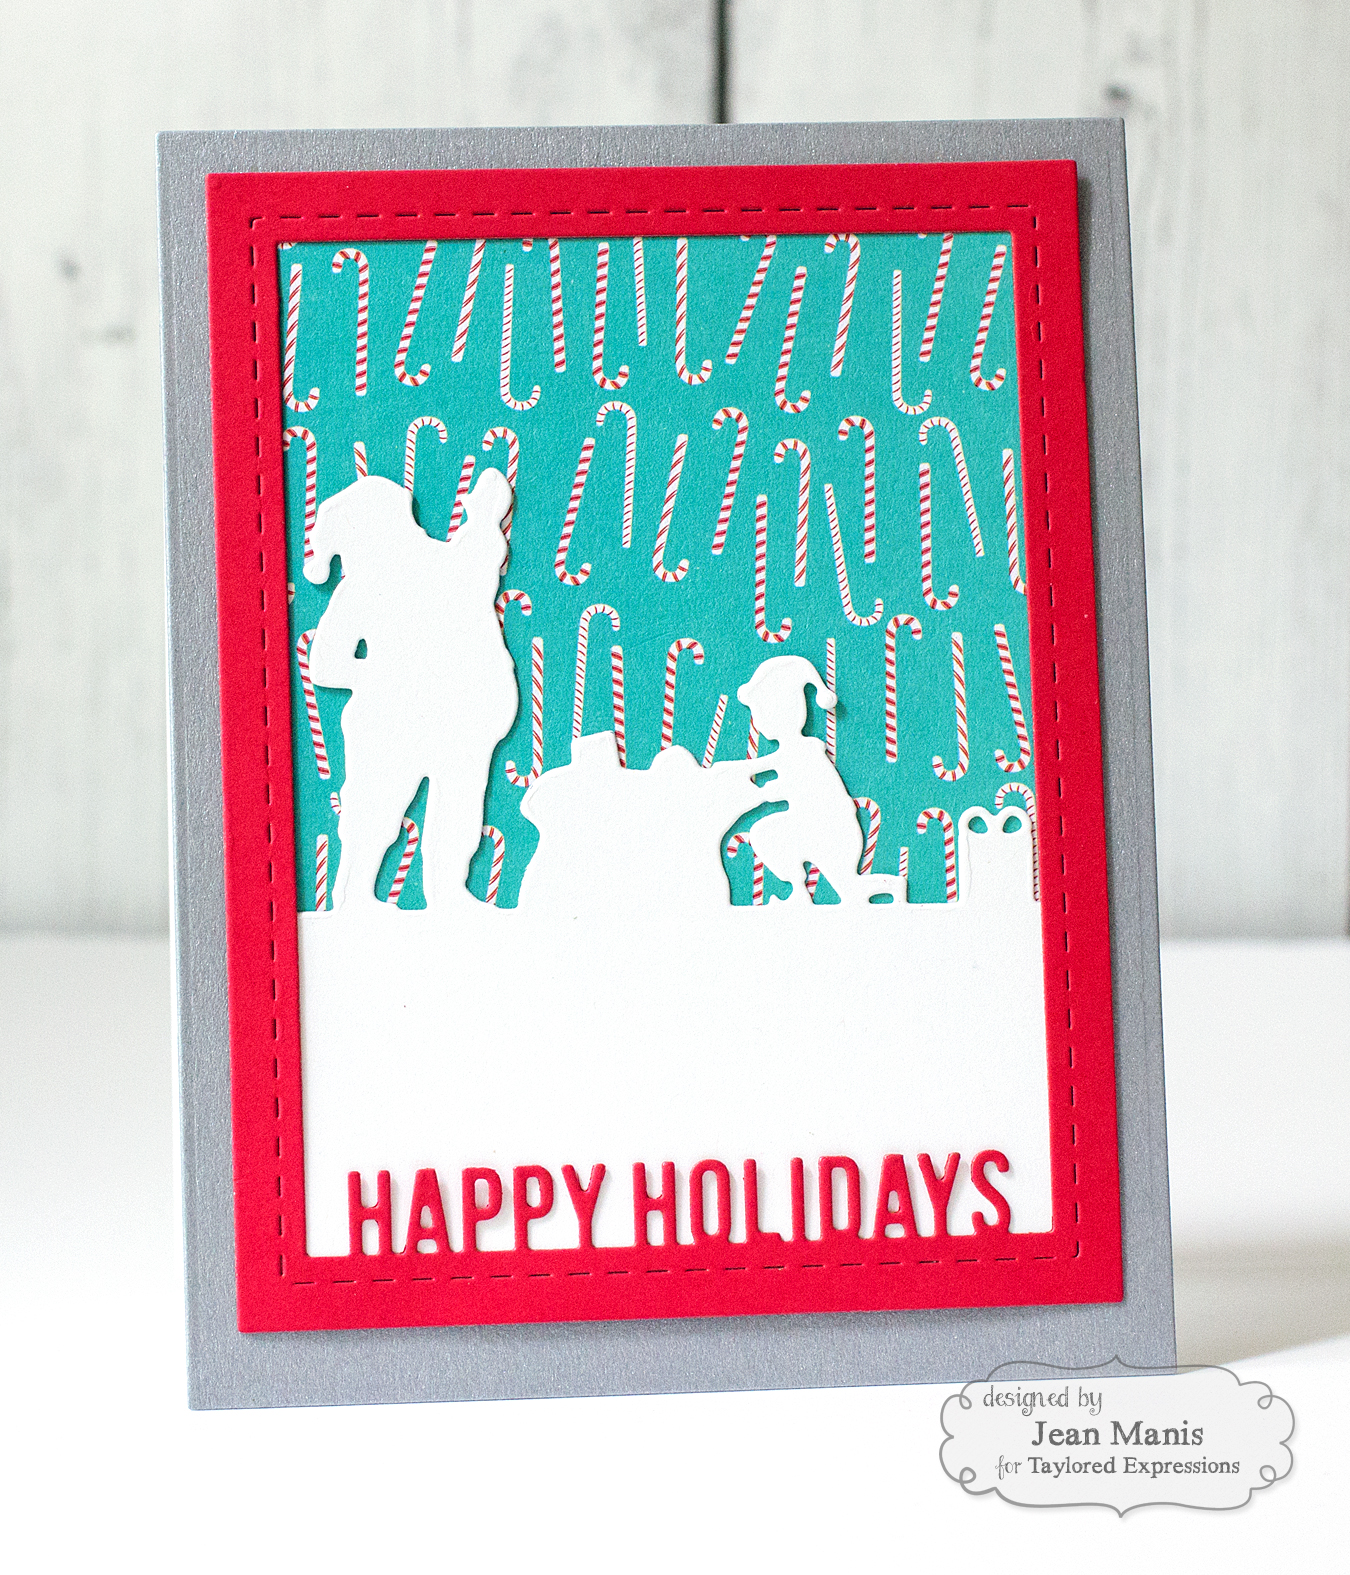 TE Vintage/Retro Christmas Die Cut Card